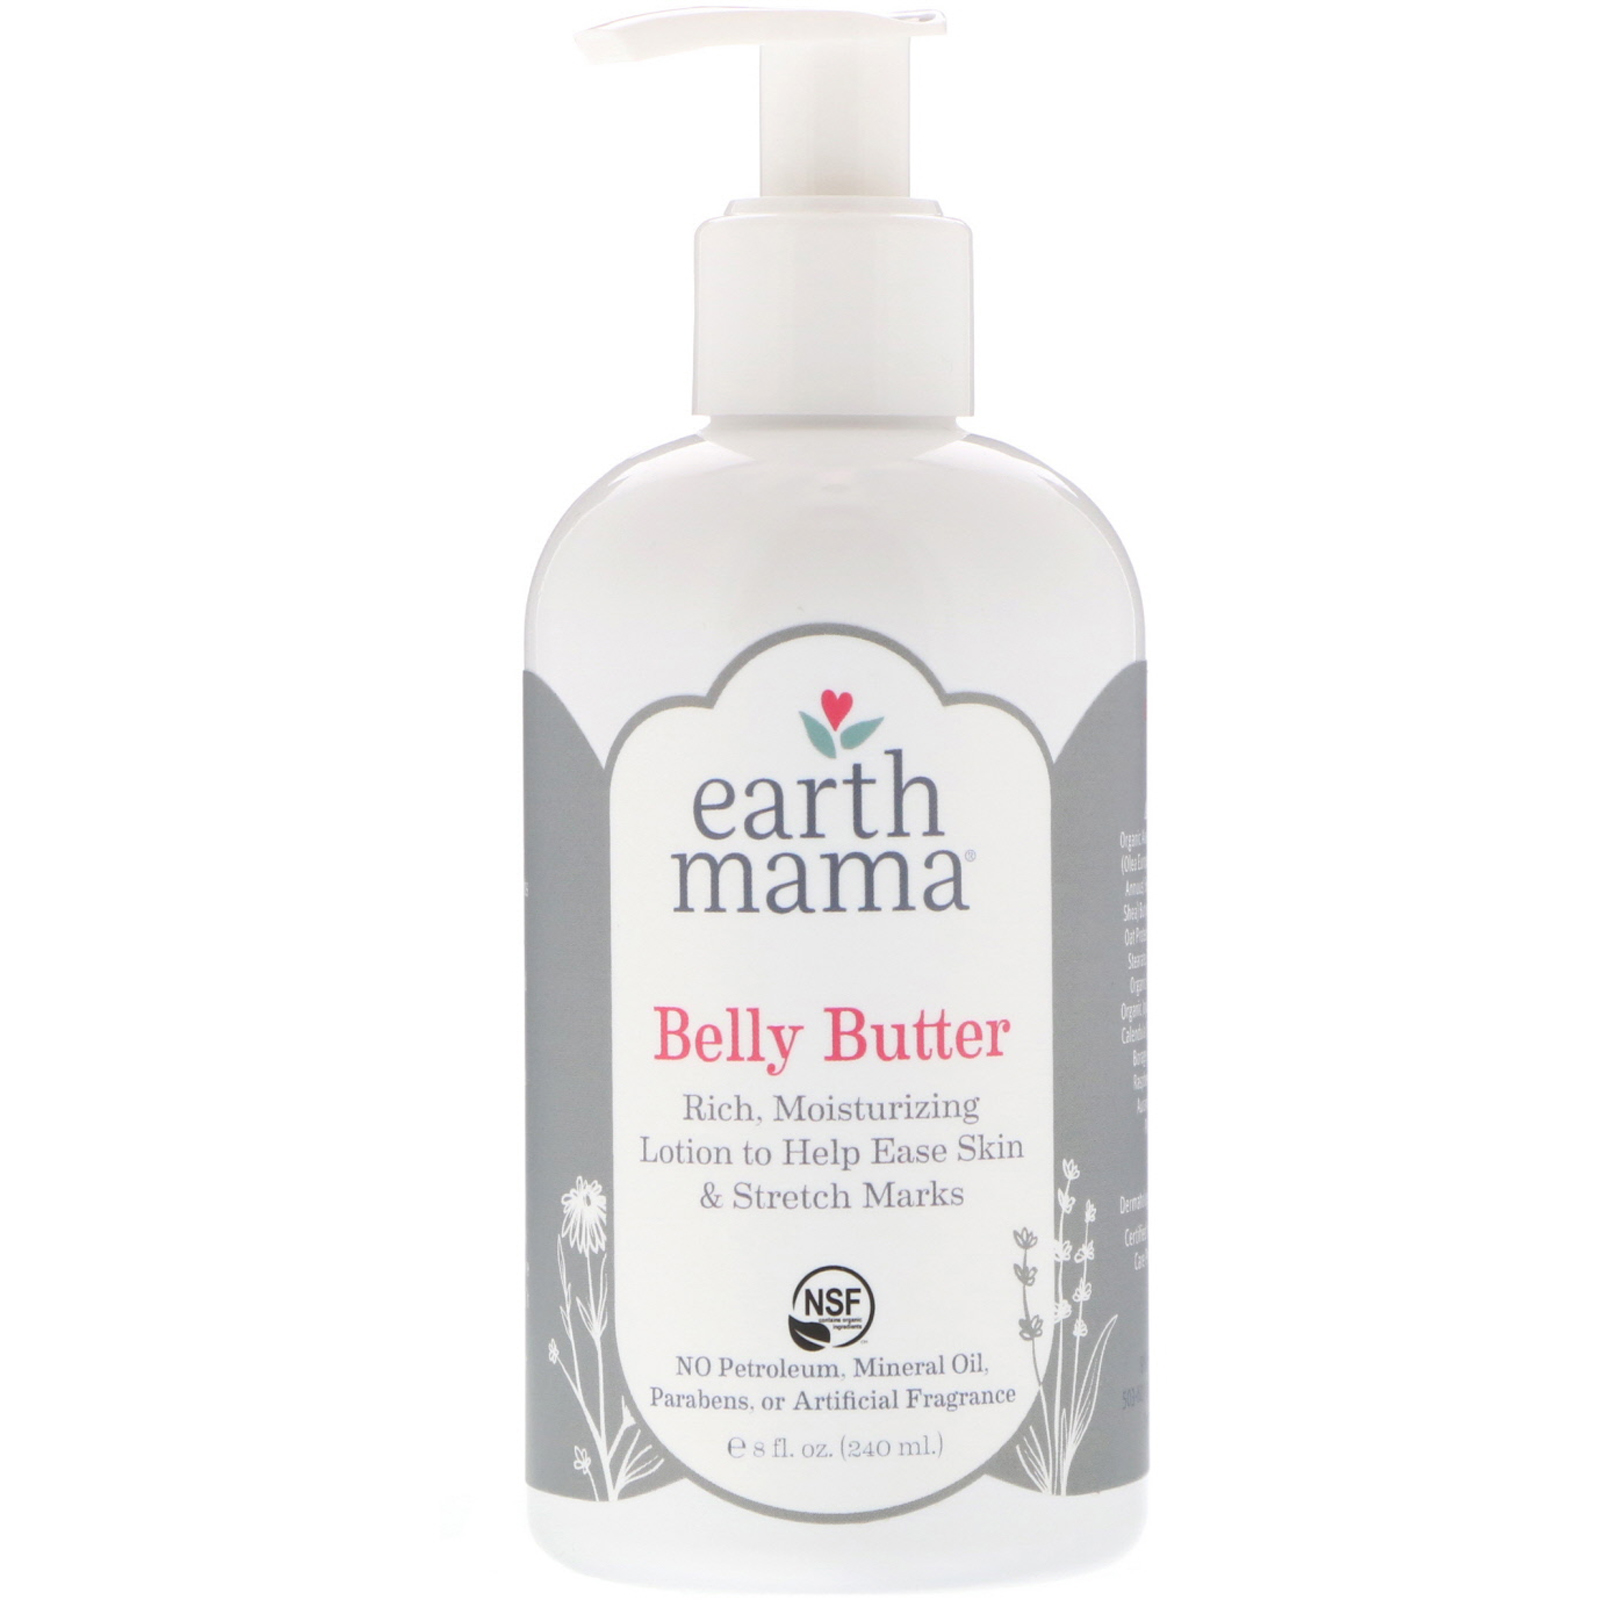 earth mama body butter reviews